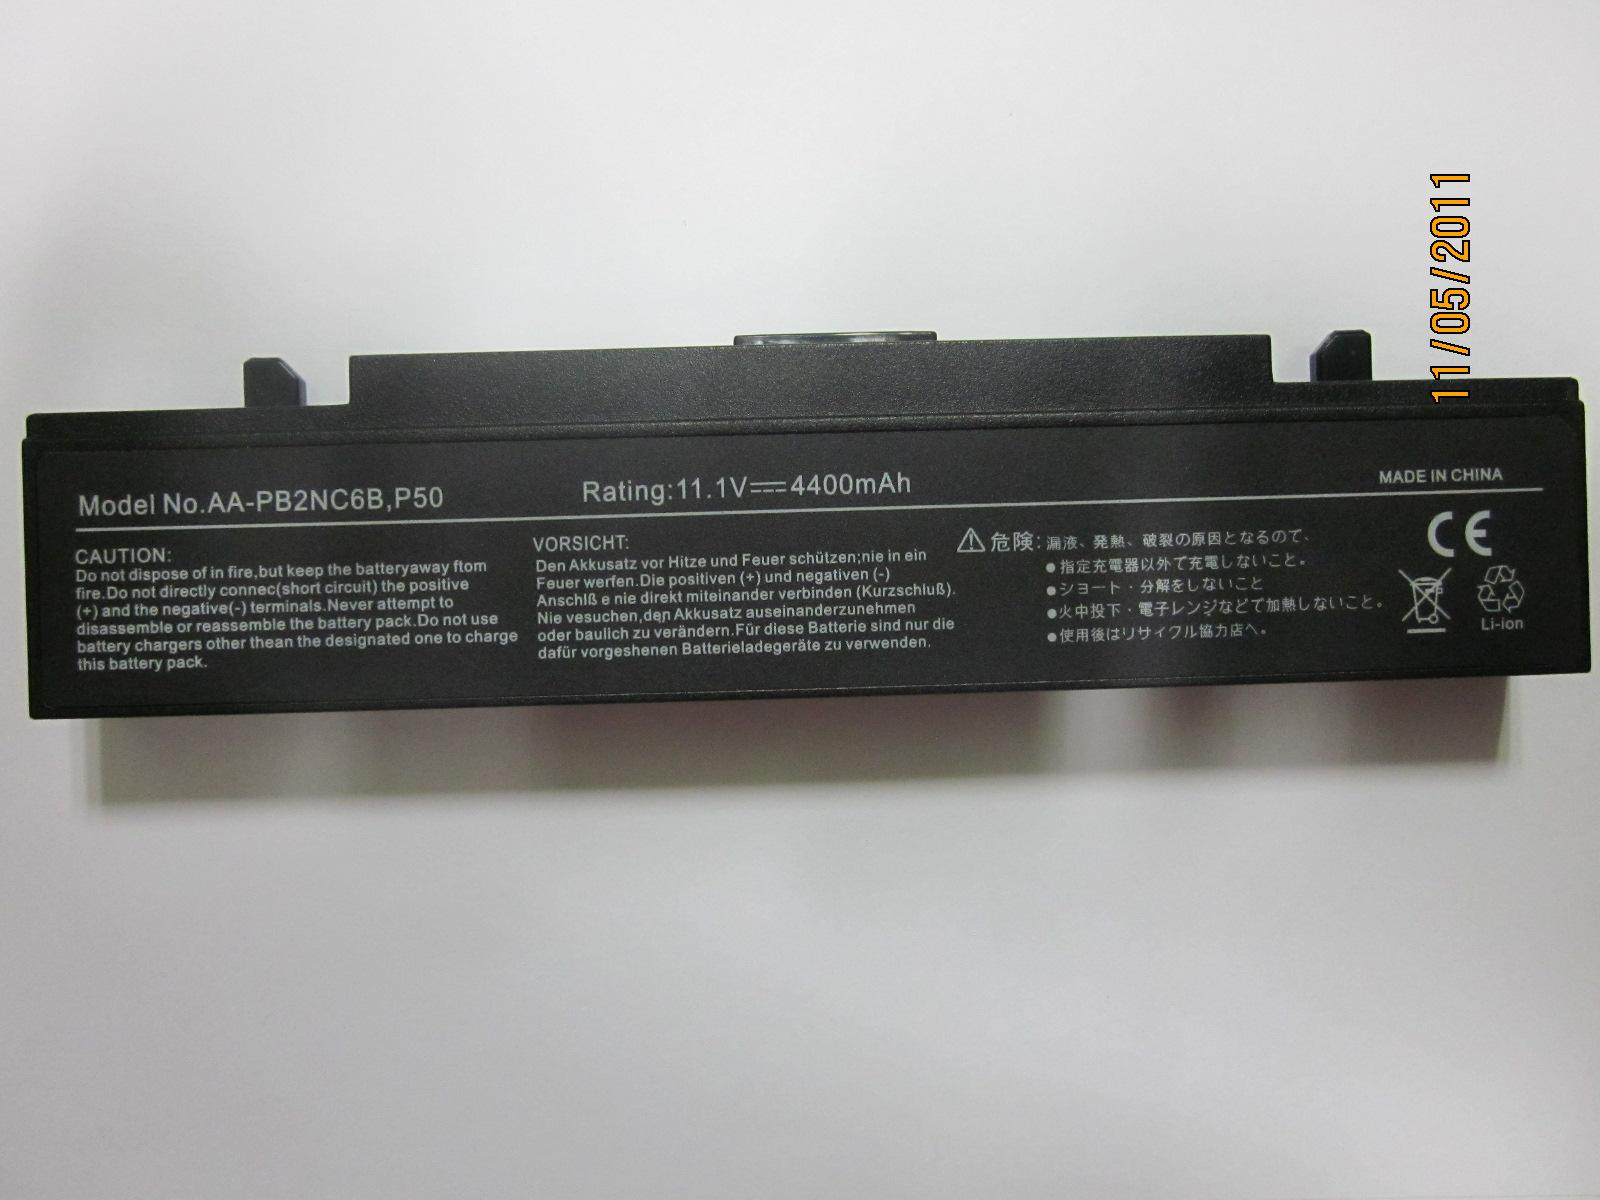 Replacement Laptop Battery for LENOVO T430 Compatible For L430,L530  ,T430, T430I, T530, T530I,  W530I, W530